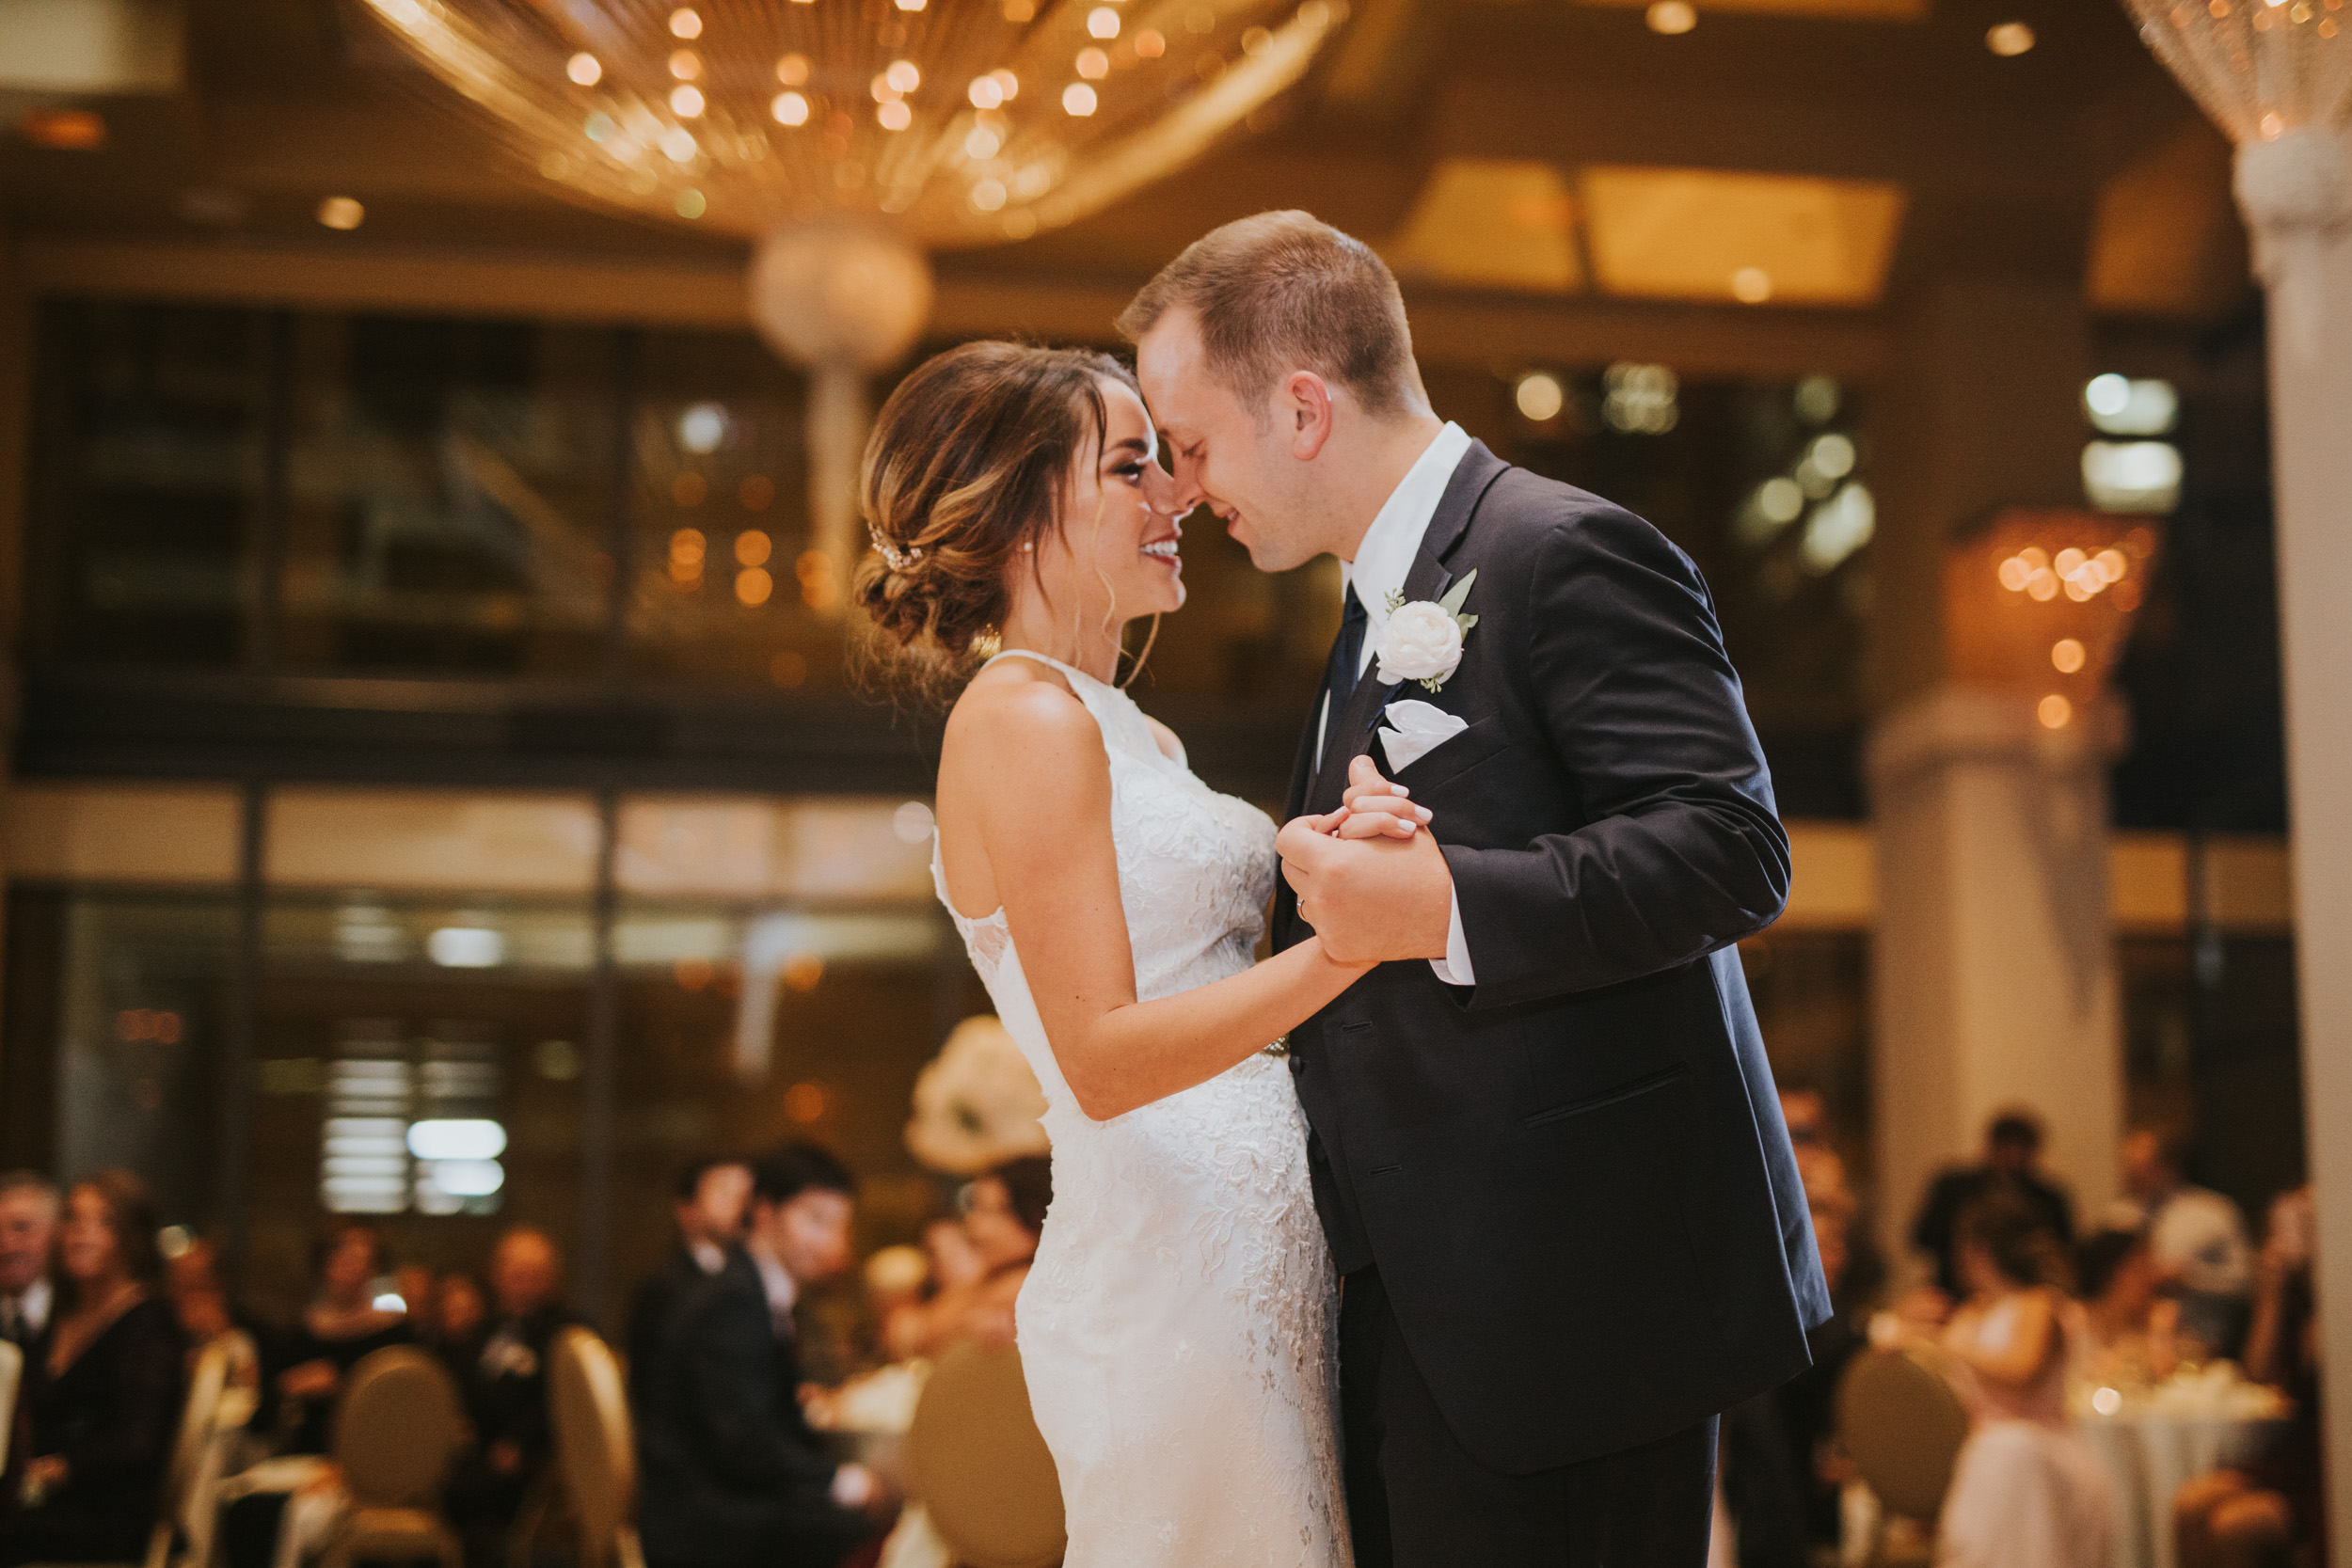 Downtown Chicago Wedding_Polly C Photography 1706210919.jpg